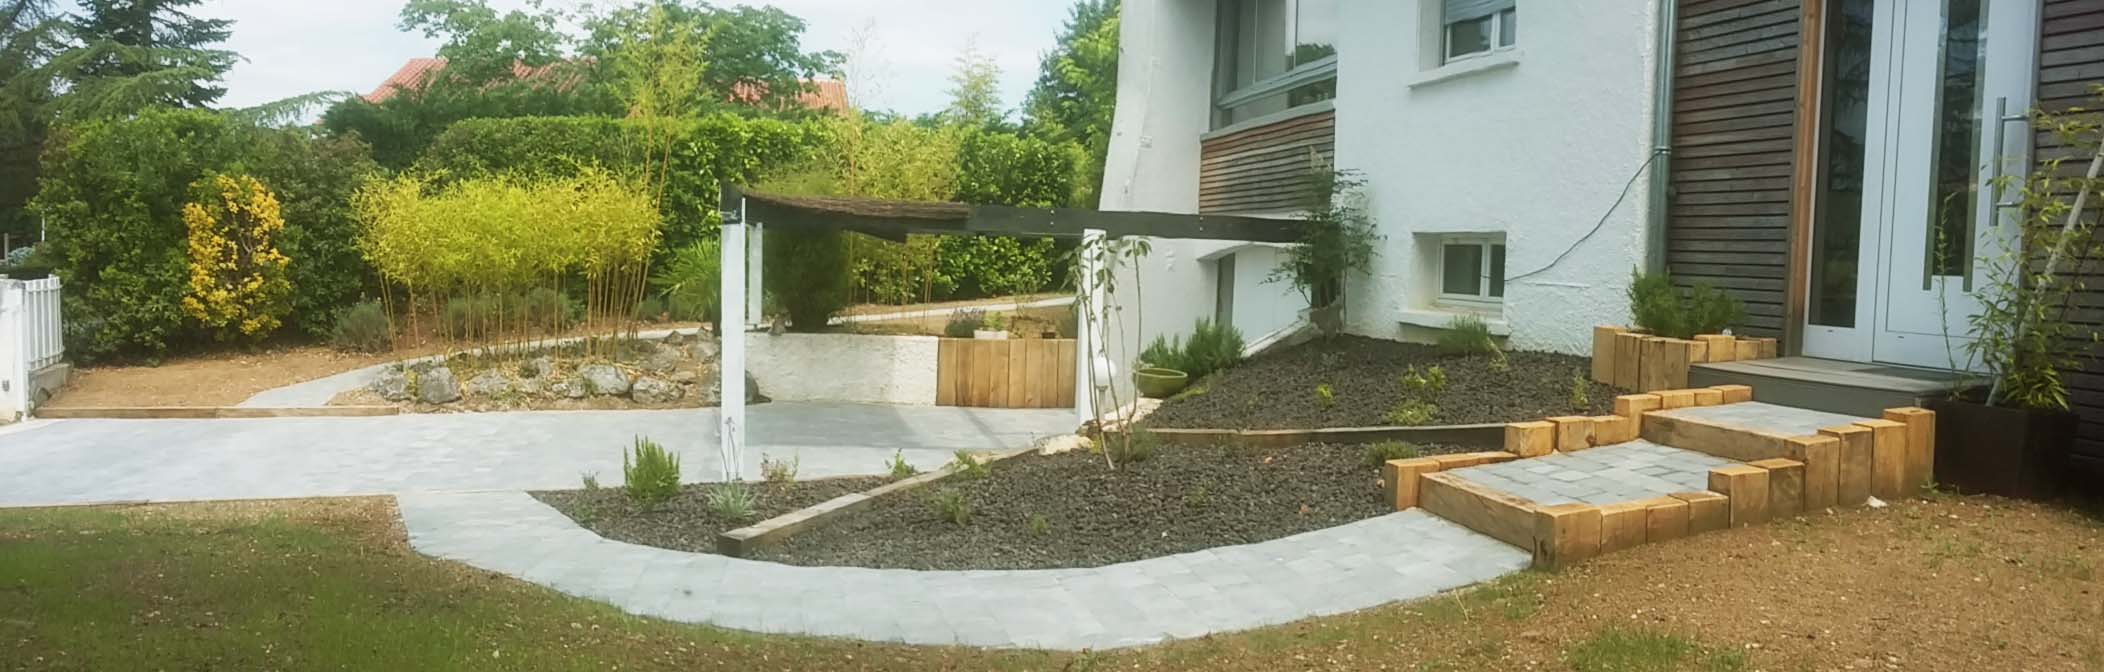 R novation de jardin pibrac brin de nature for Renovation jardin